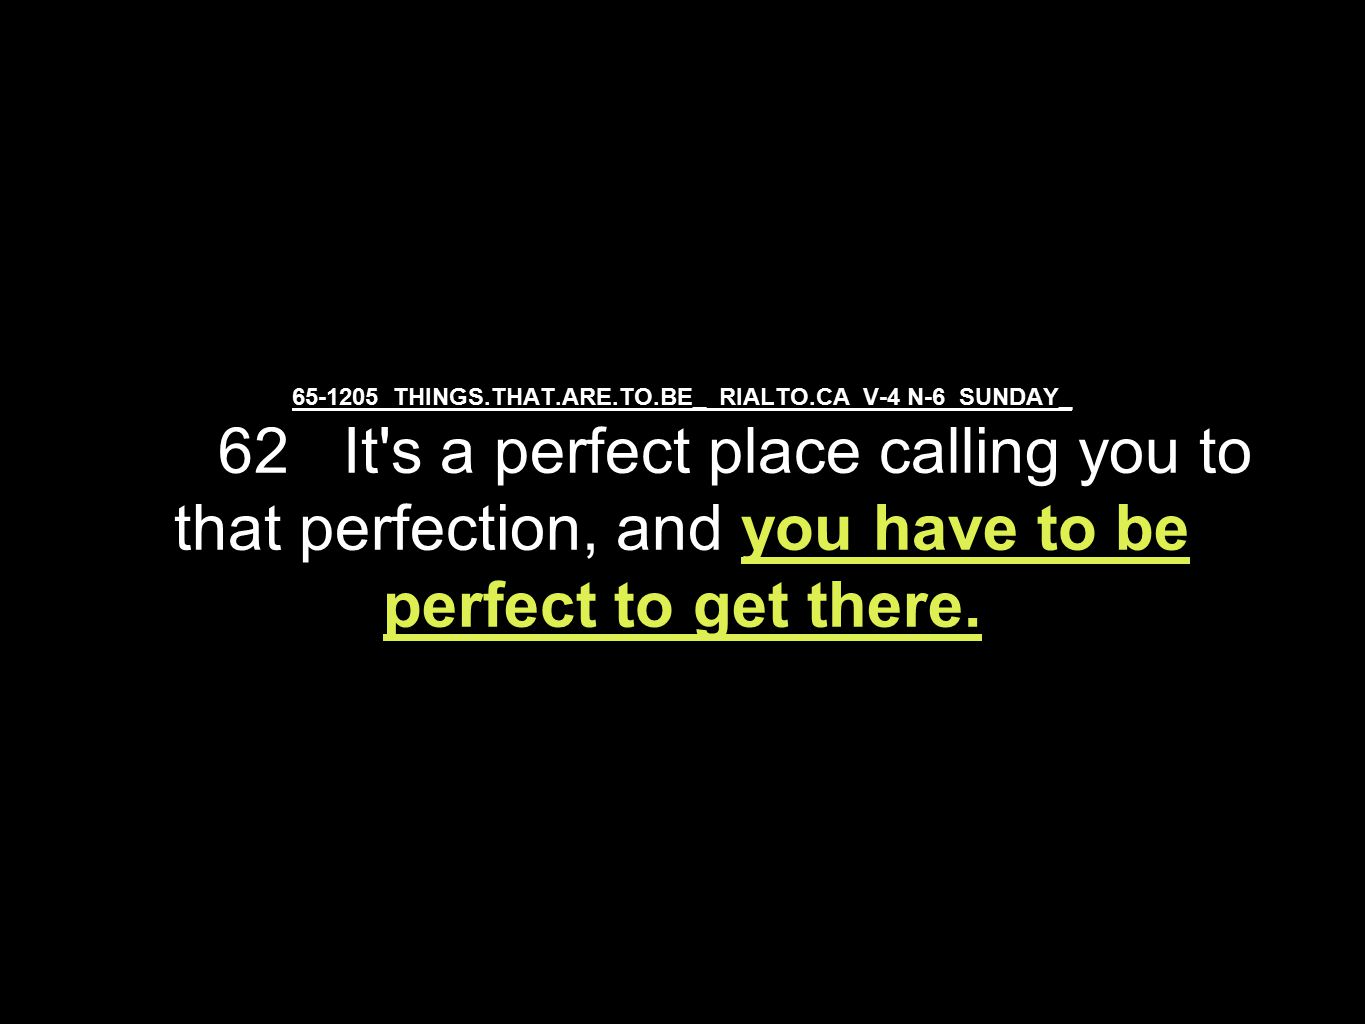 65-1205 THINGS.THAT.ARE.TO.BE_ RIALTO.CA V-4 N-6 SUNDAY_ It s a perfect Kingdom, so it must be a perfect people come.